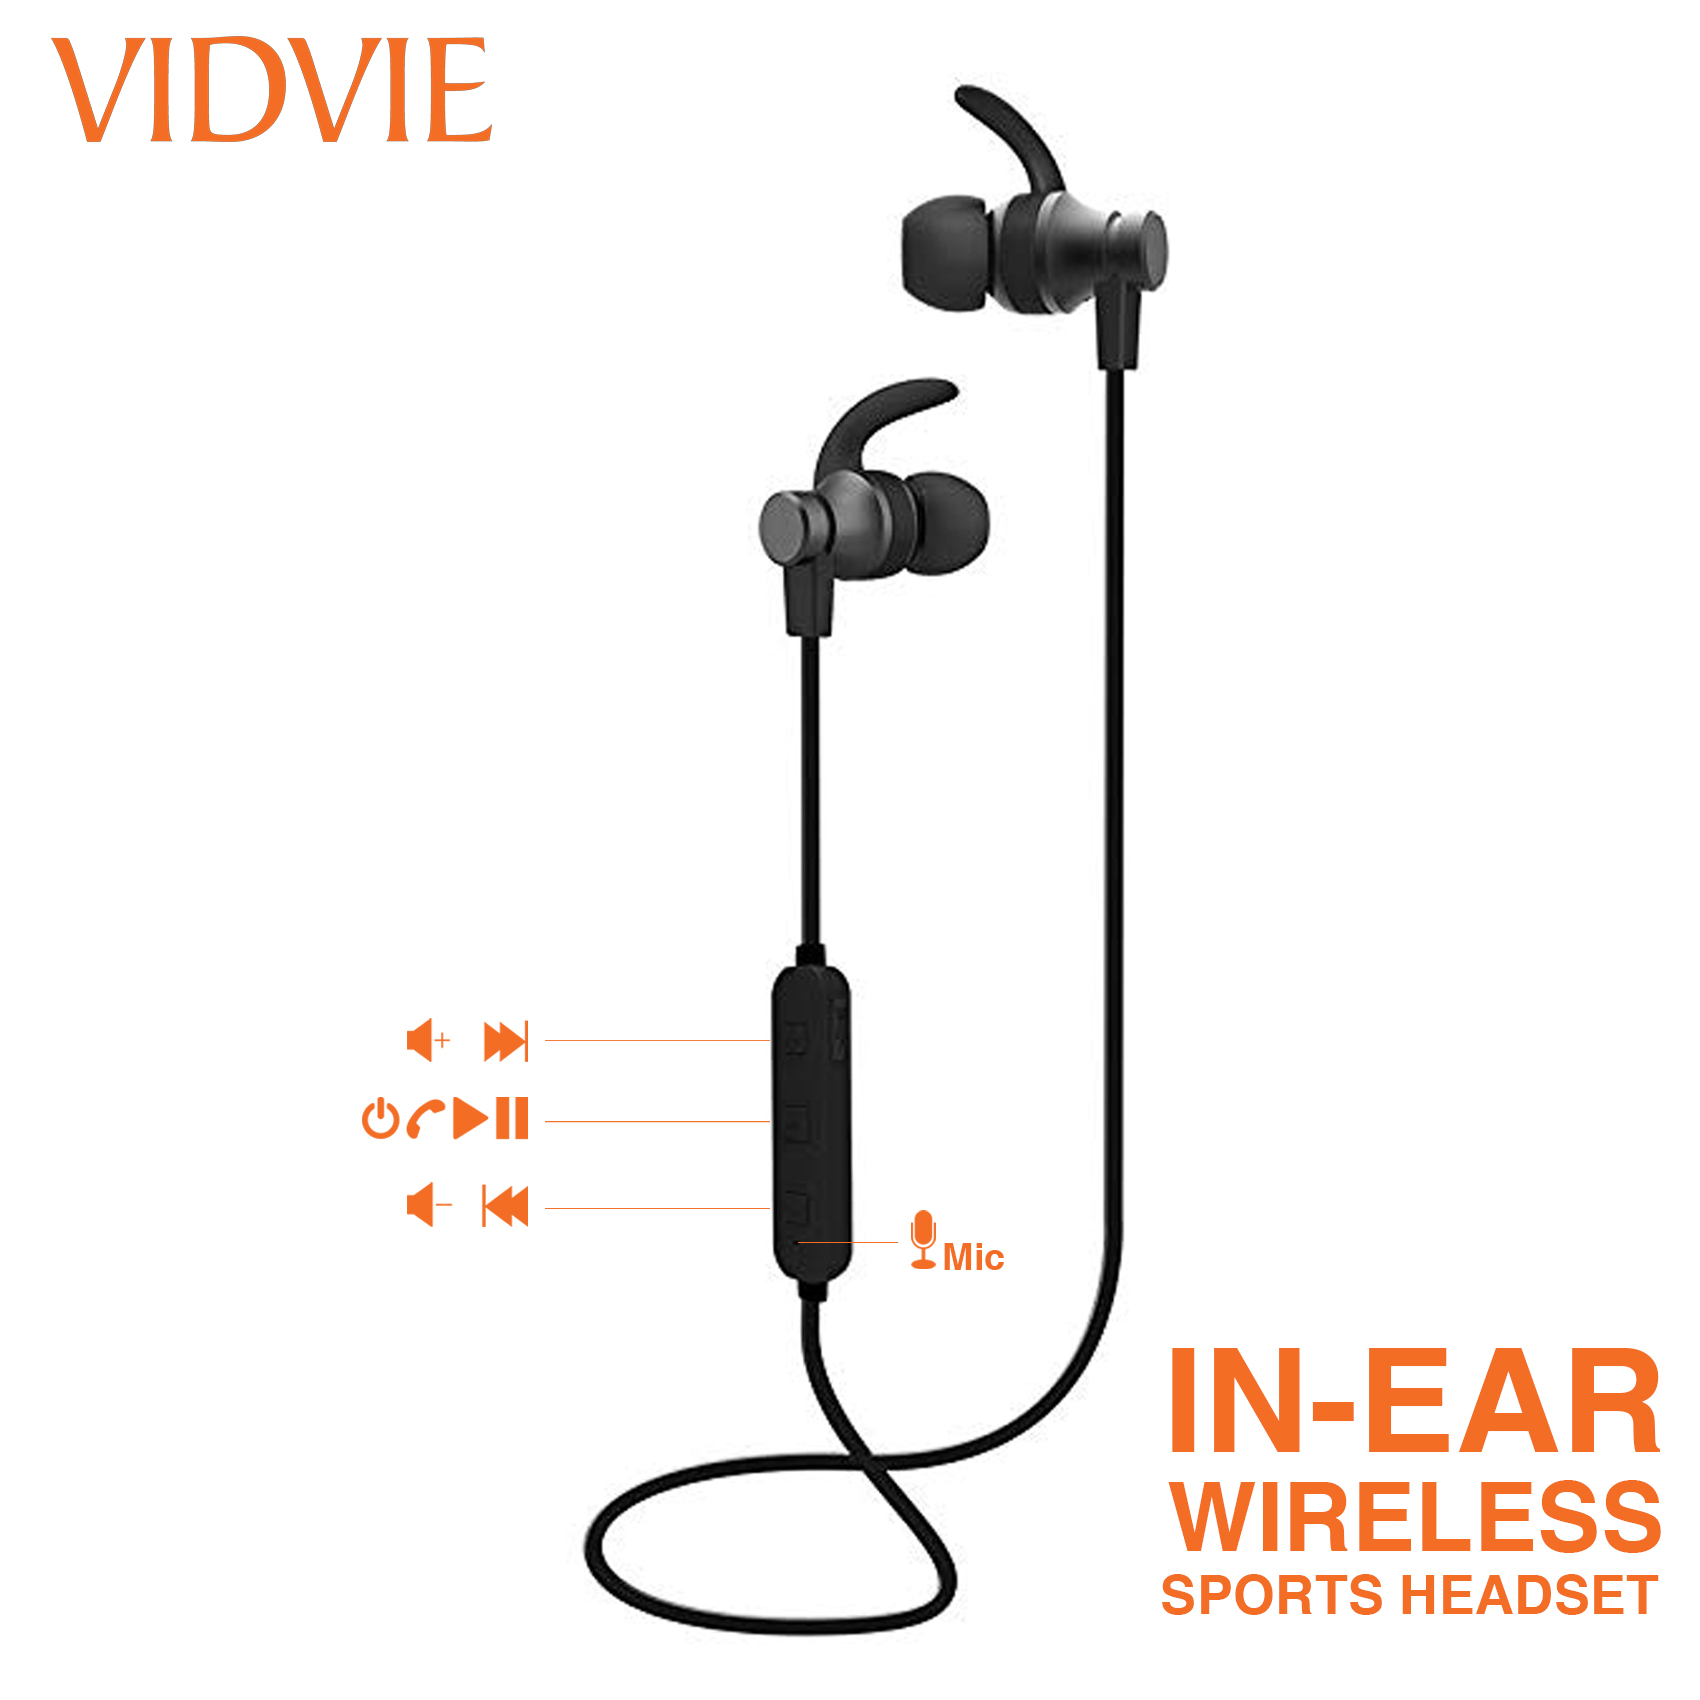 Vidvie Sports Wireless Headset - Black